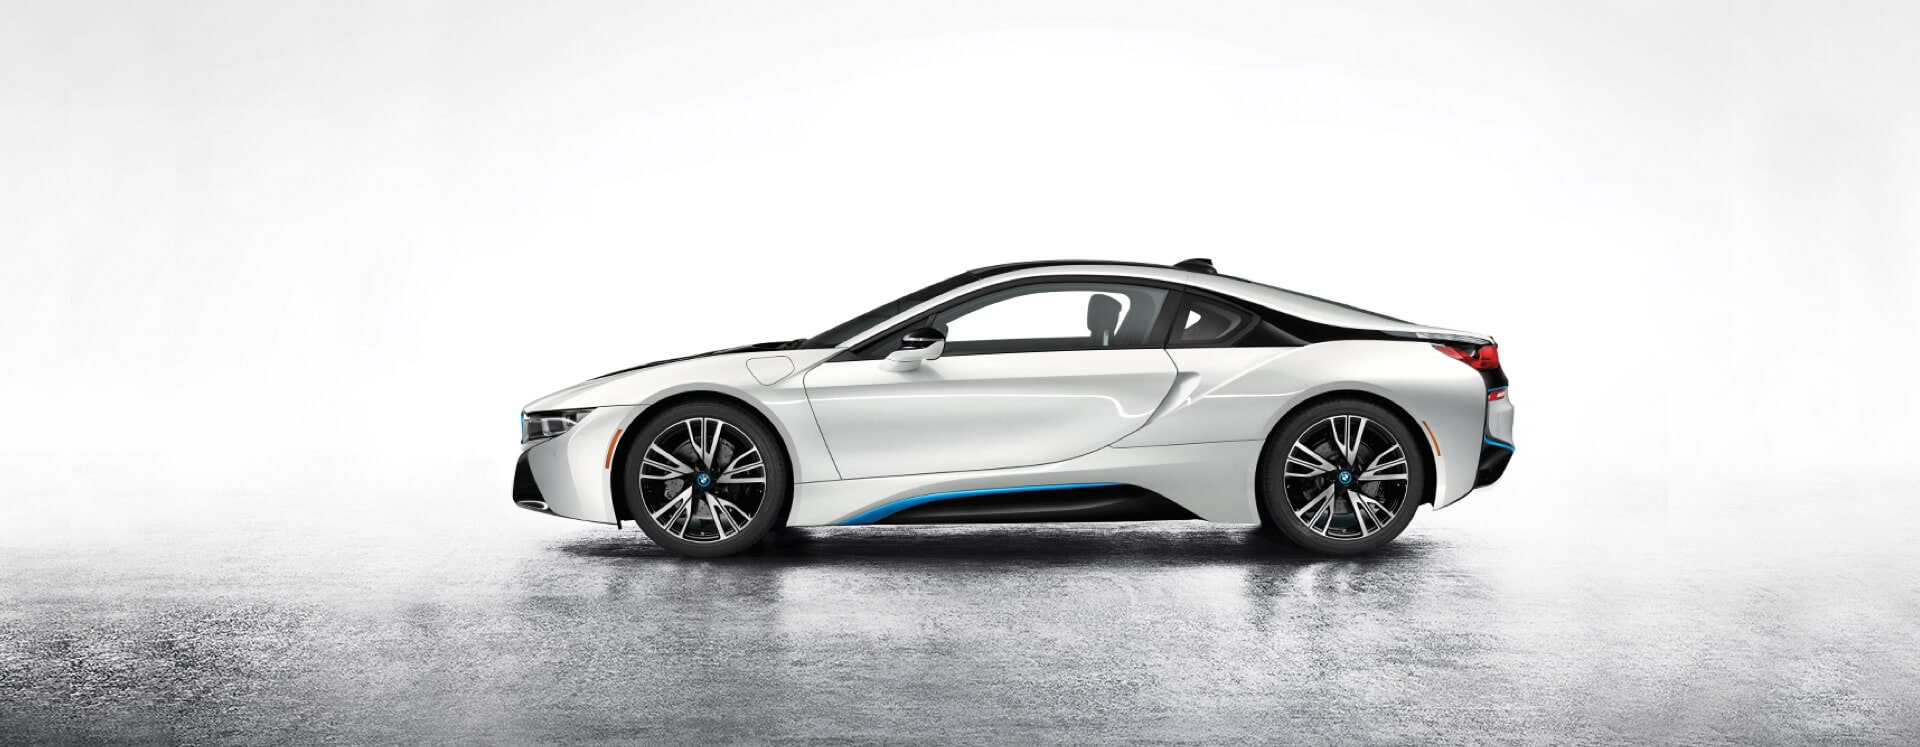 Bmw Certified Pre Owned >> BMW i8 - BMW USA